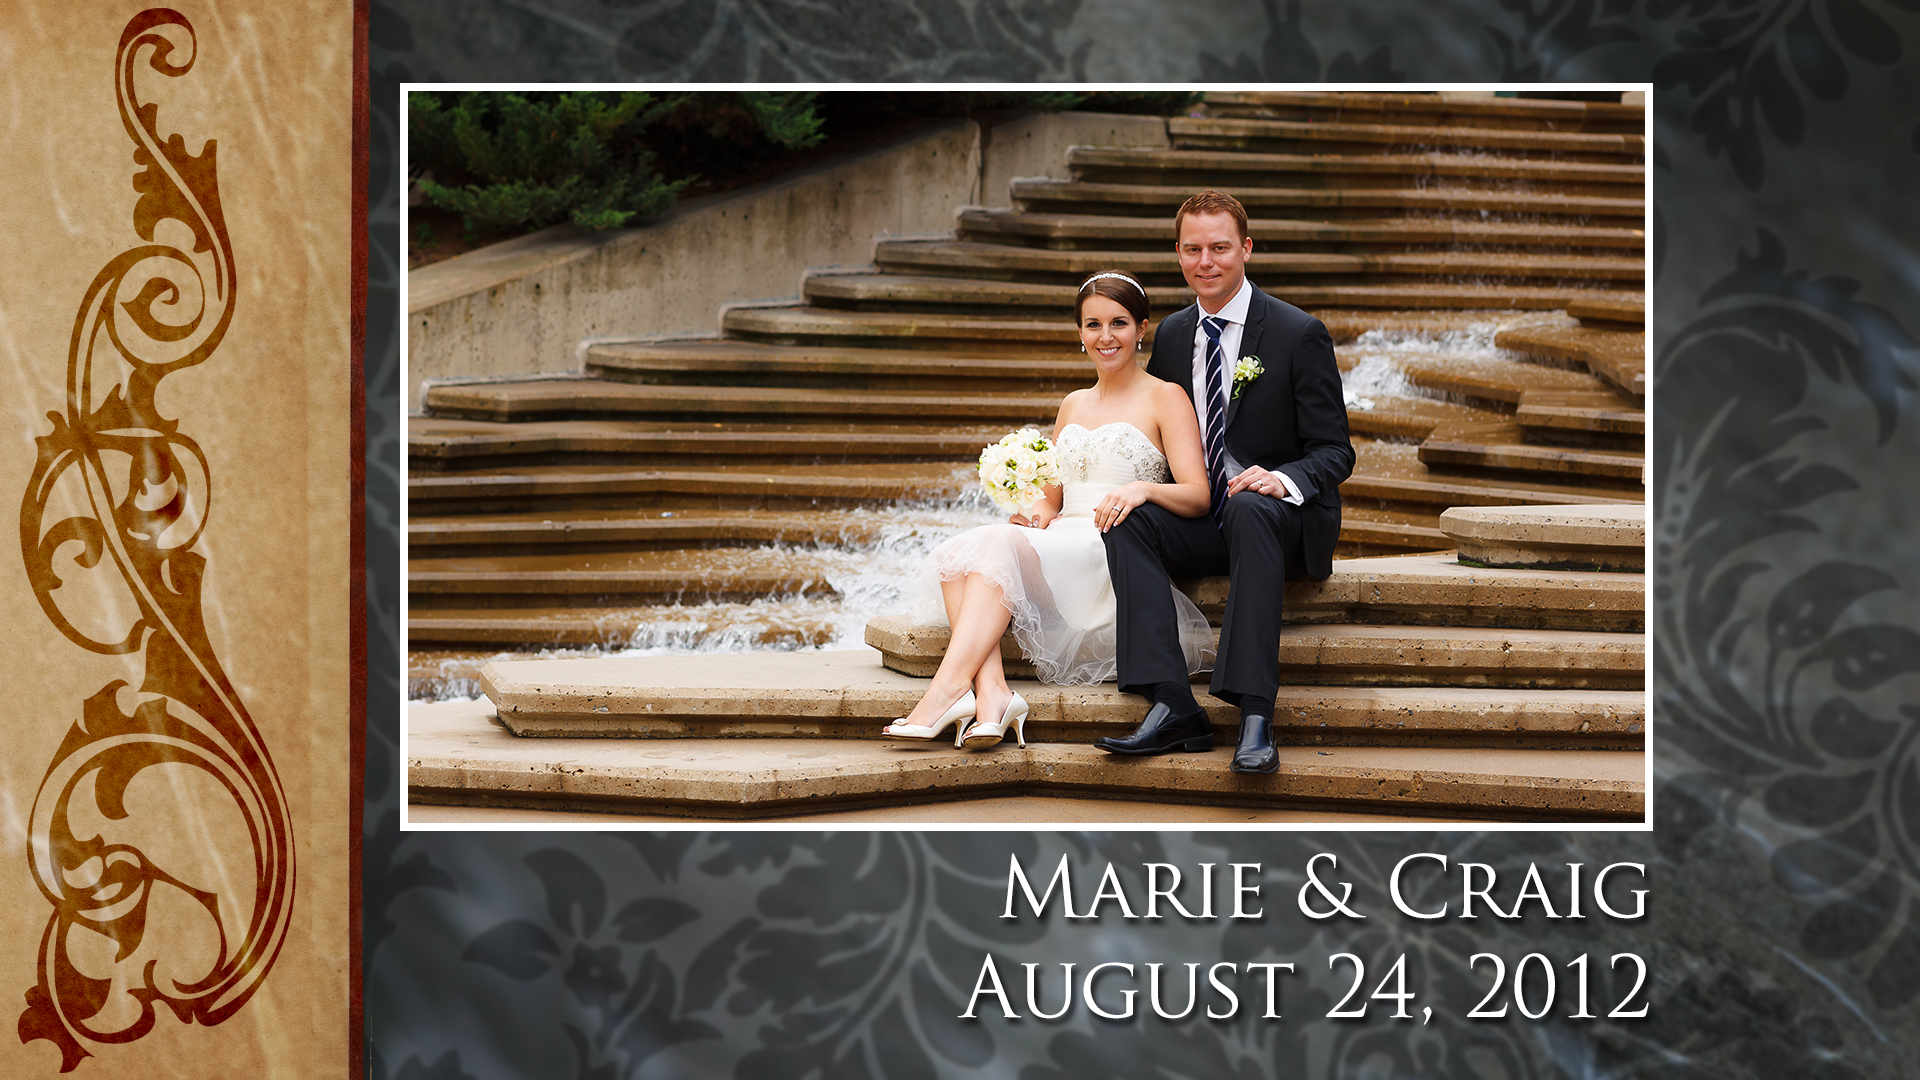 Marie & Craig - Calgary Wedding Photography